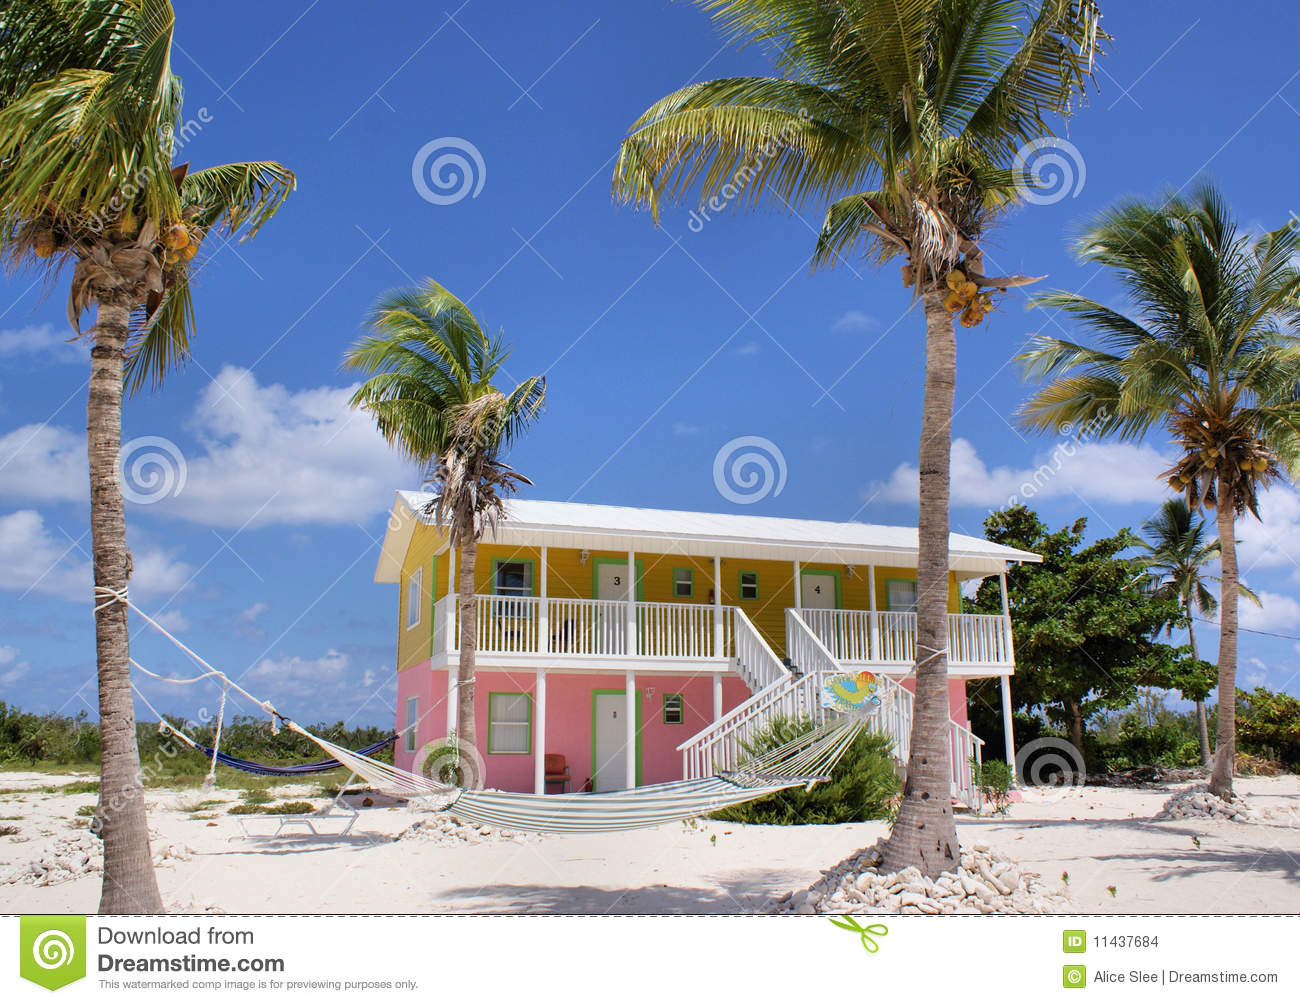 how to buy a house in the caribbean